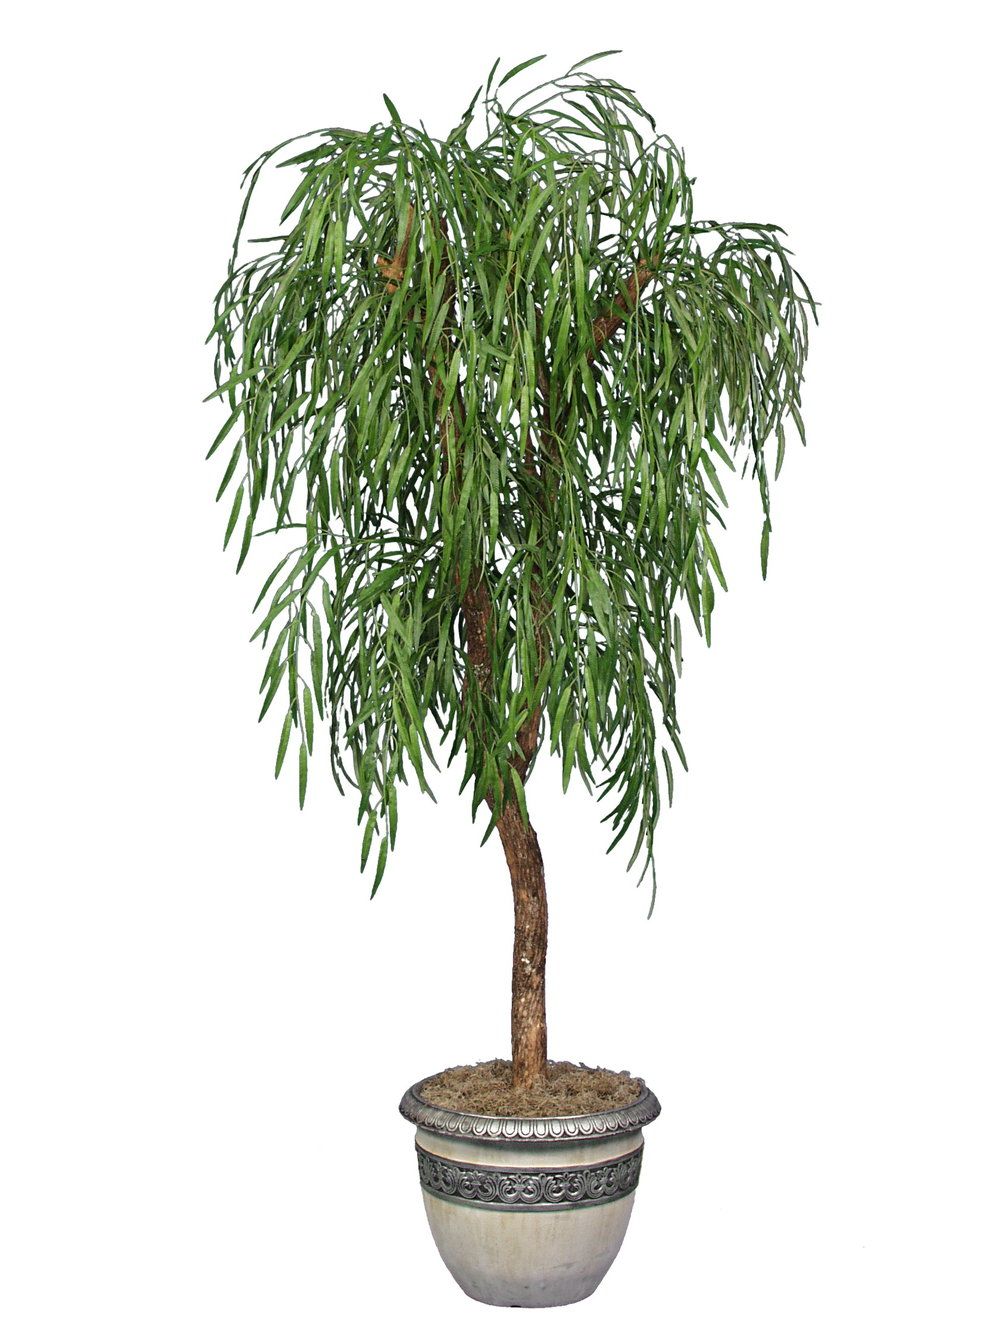 TSP 1423- Weeping Willow